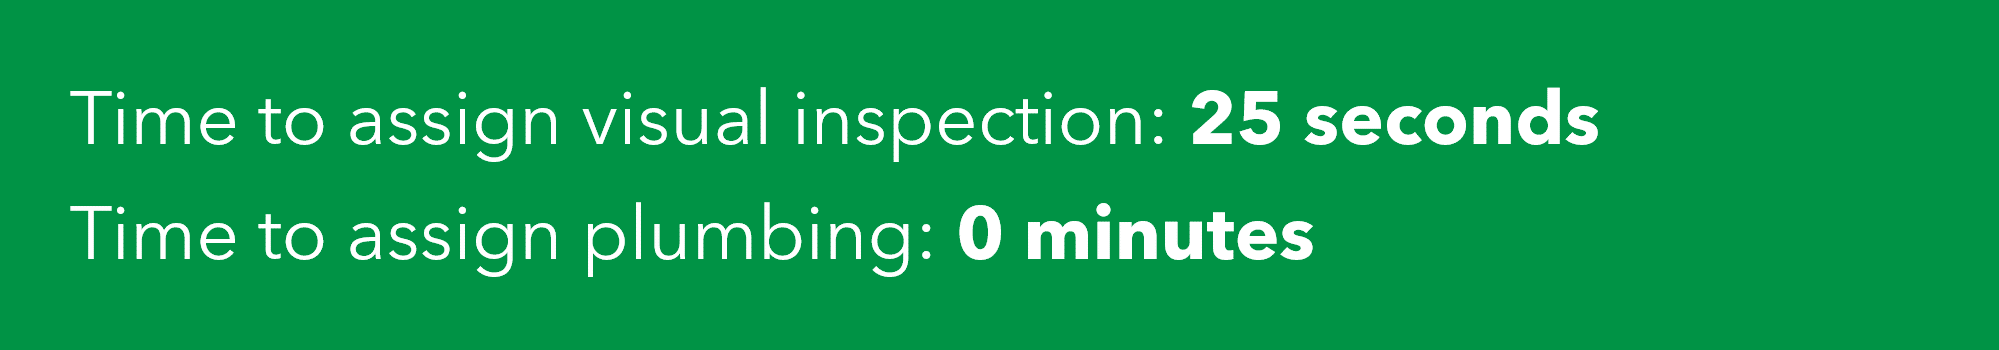 Standard operating procedure time investment: Time to assign visual inspection: 25 seconds. Time to assign plumbing: 0 minutes